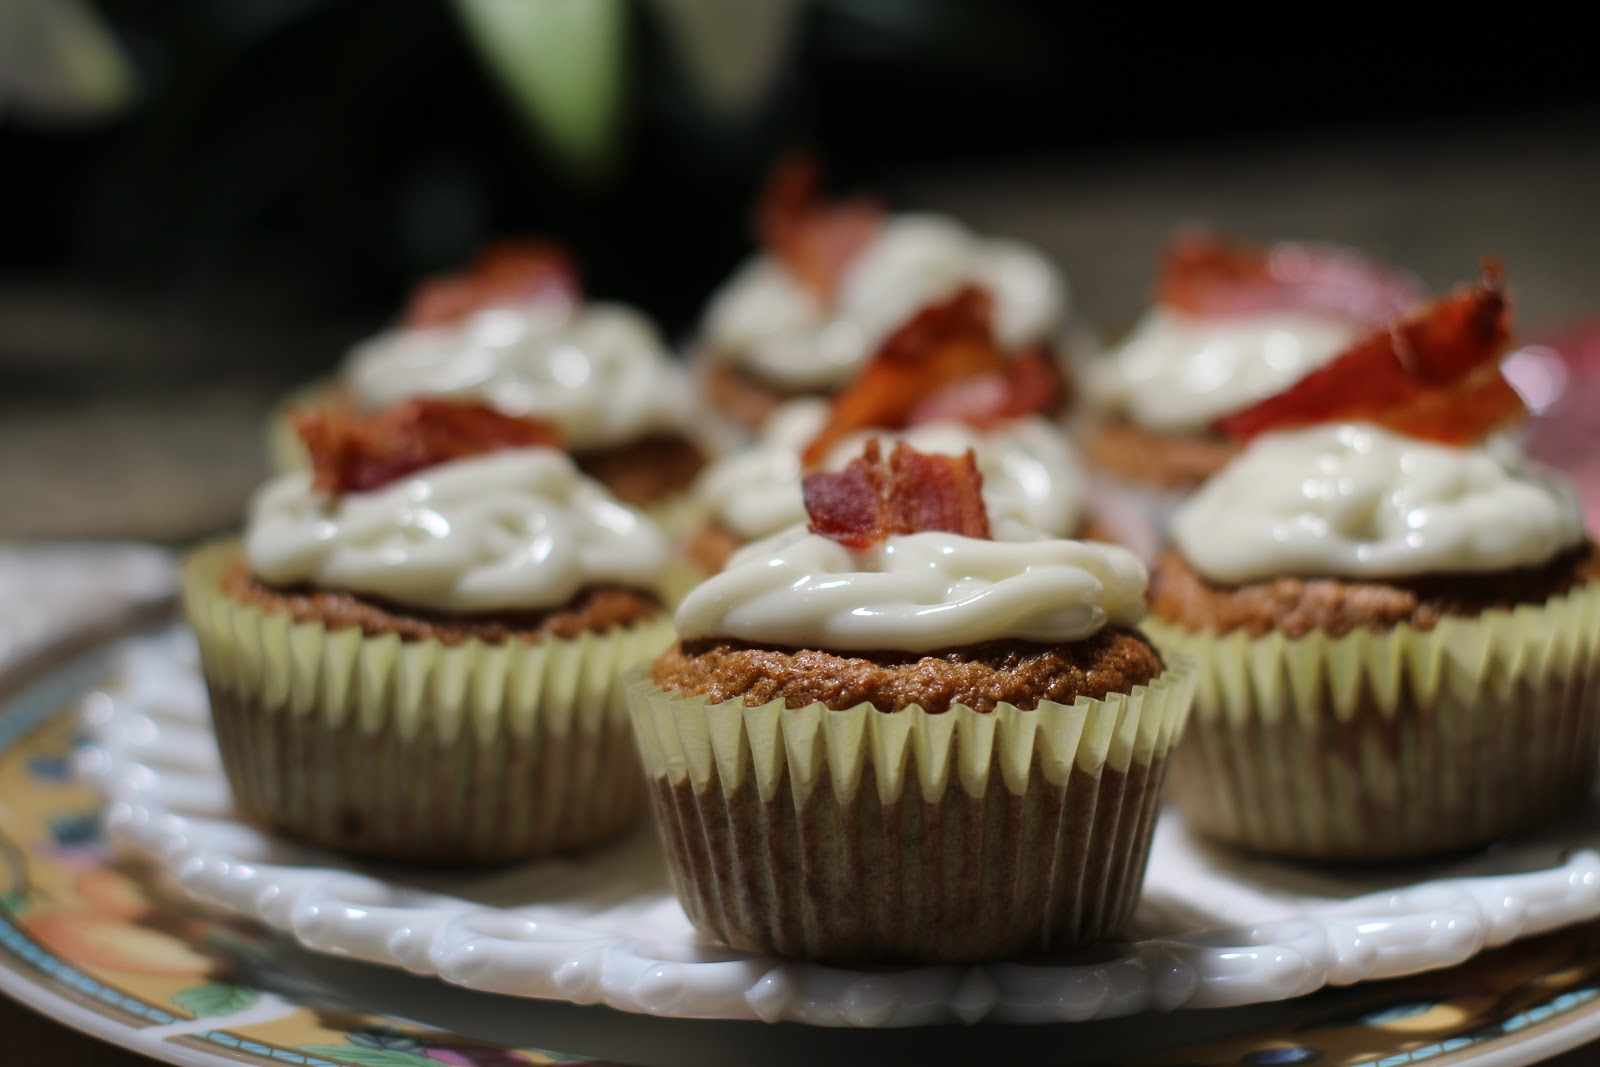 Gluten-Free Maple Bacon Buckwheat Carrot Muffins, no refined sugar, dairy or xanthan gum